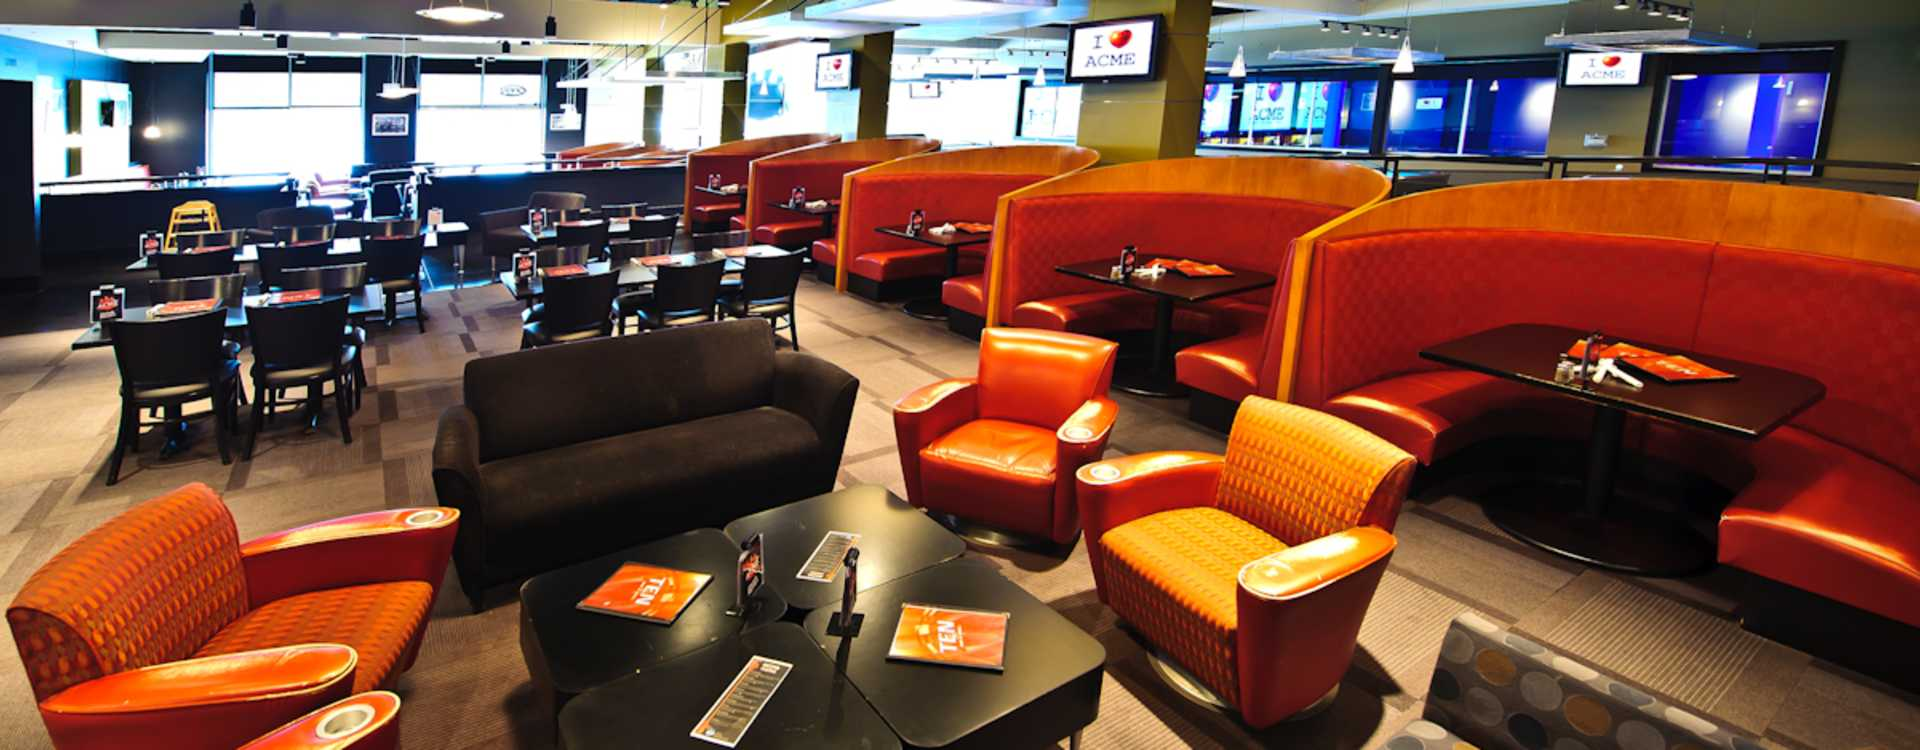 meeting-facility-ACME_Bowling__Billiards_and_Events_Meeting_Facility-5.jpg